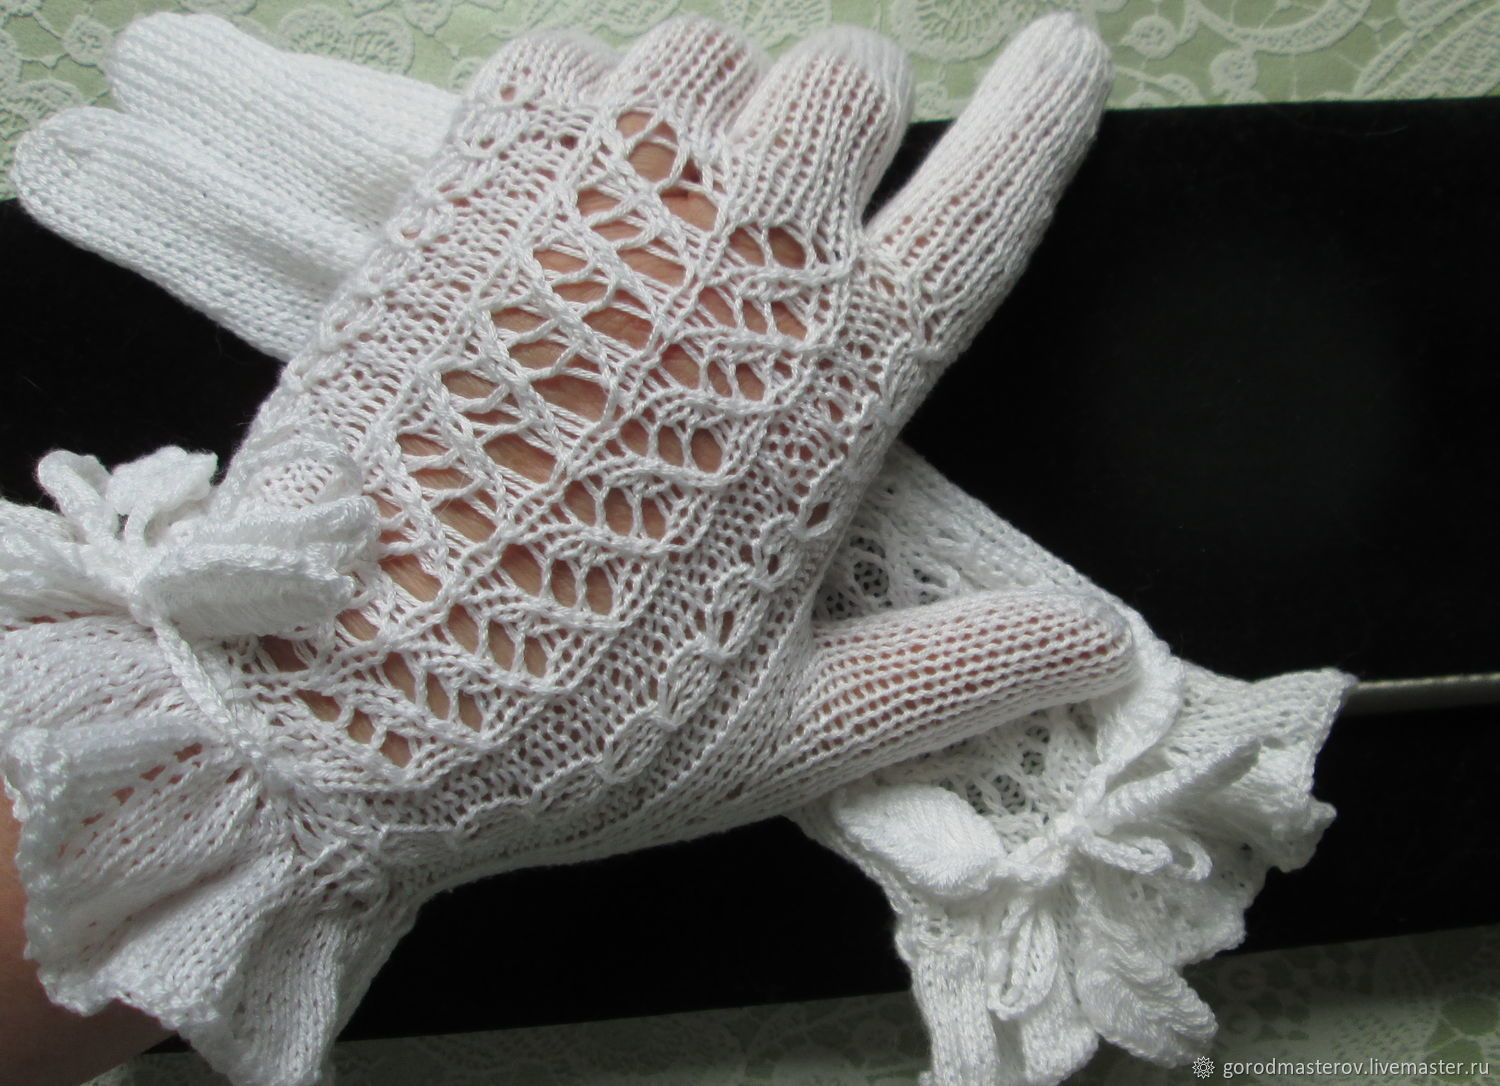 Summer white openwork gloves made of cotton, Gloves, Moscow,  Фото №1